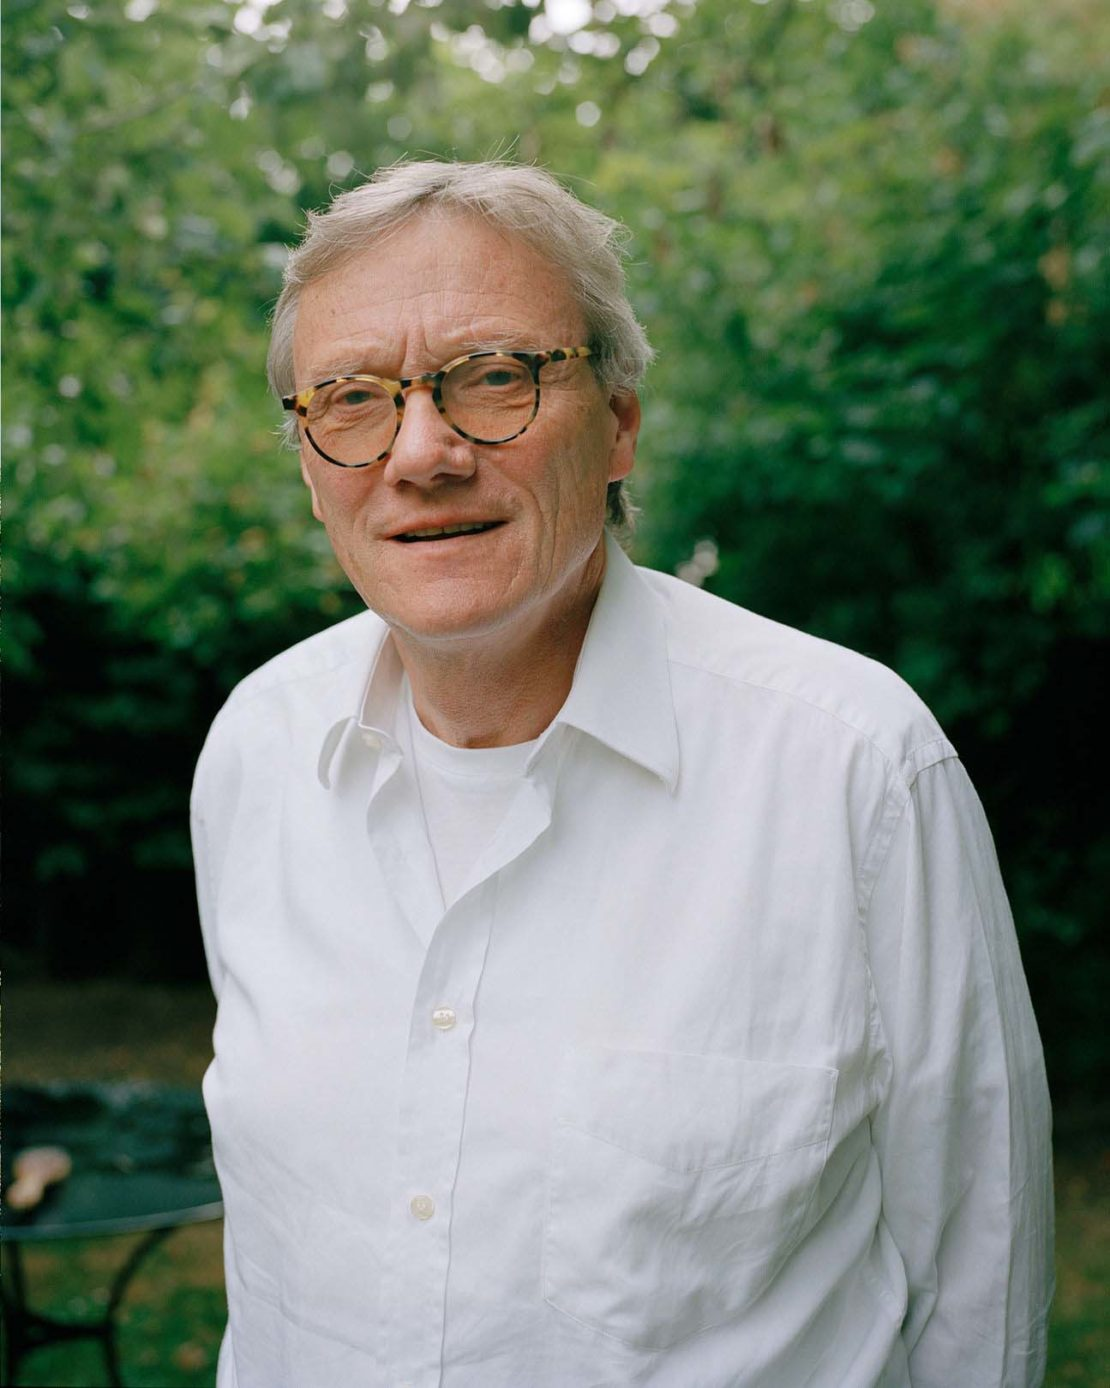 Wulf Daseking, former chief planner of Freiburg and now professor at Freiburg University and the Bartlett School of Architecture